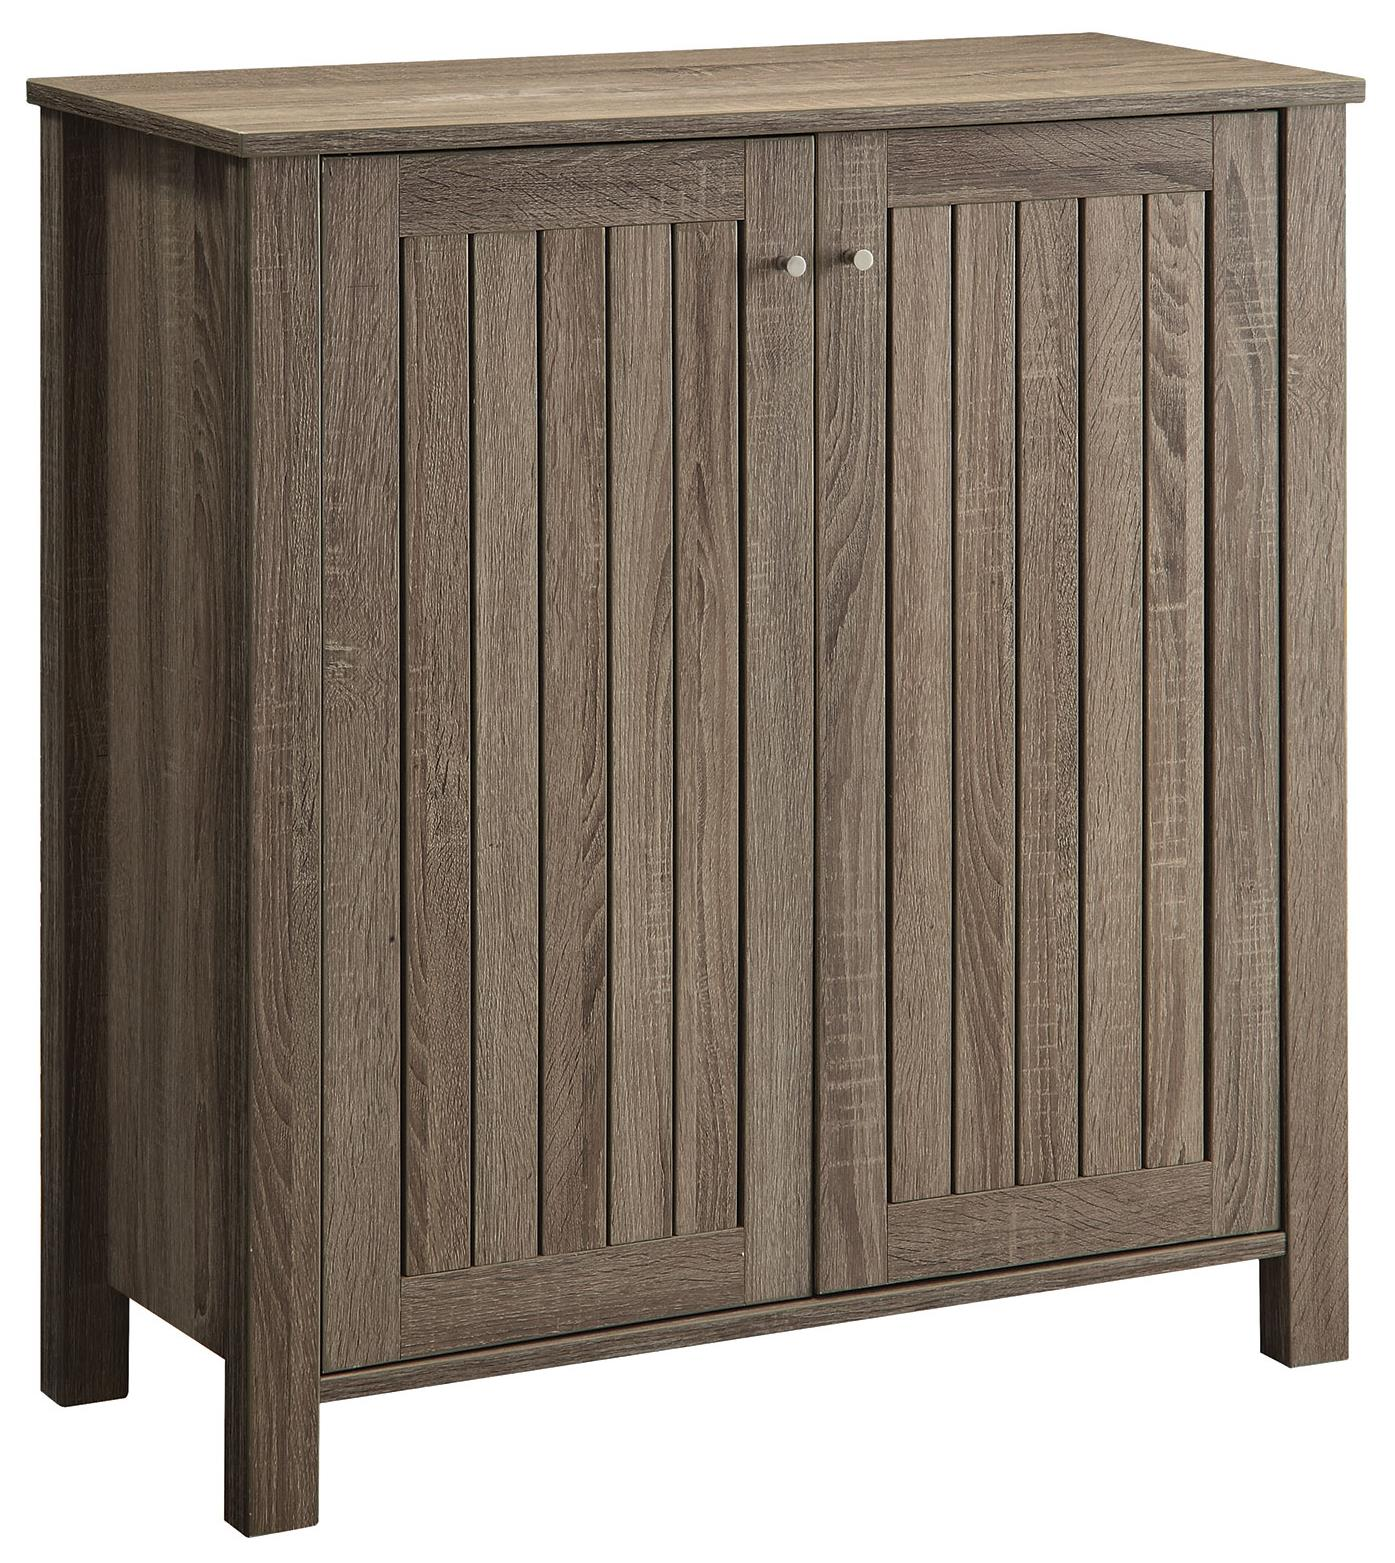 Accent Cabinets Shoe Cabinet/Accent Cabinet by Coaster at Northeast Factory Direct